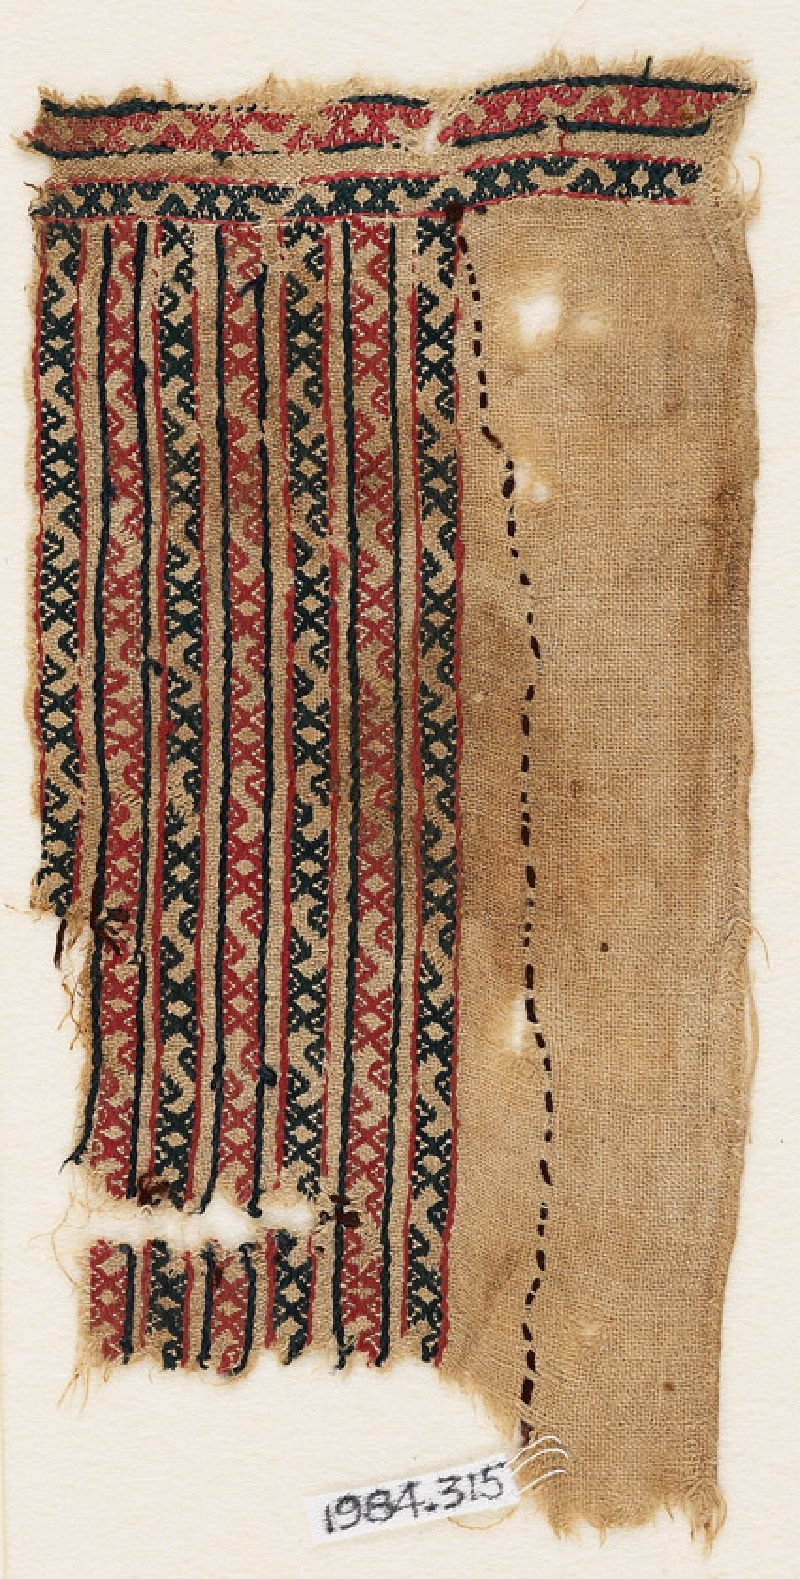 Textile fragment with bands of S-shapes and diamond-shapes (EA1984.315, front            )